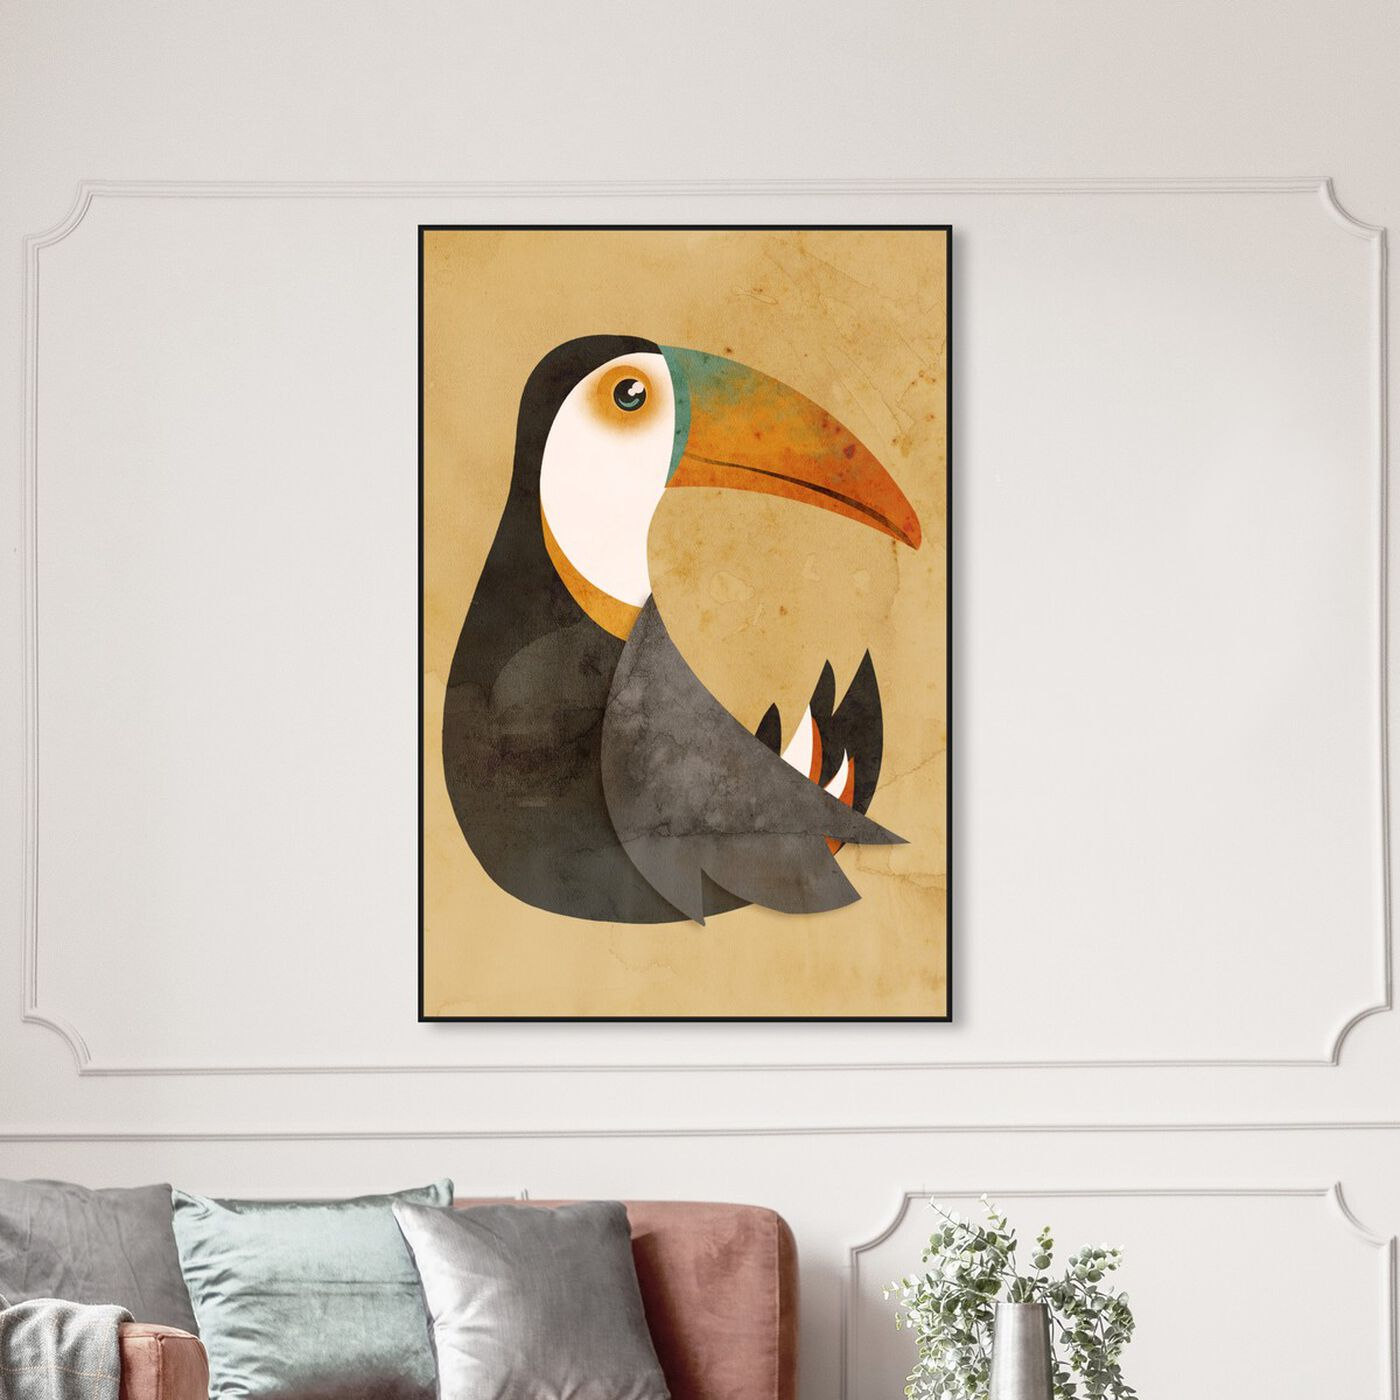 Hanging view of Vibrant Toucan featuring animals and birds art.